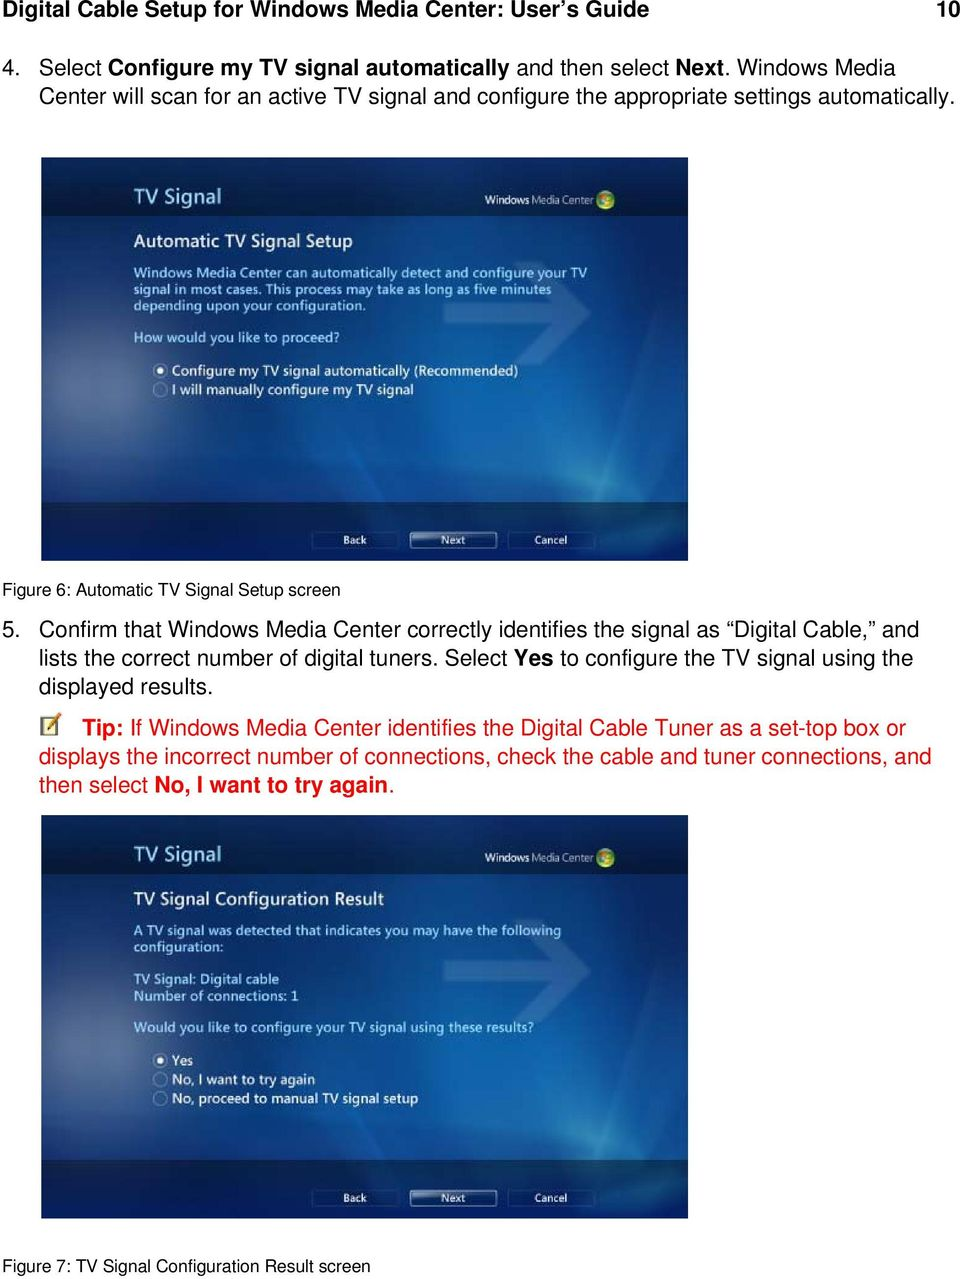 Confirm that Windows Media Center correctly identifies the signal as Digital Cable, and lists the correct number of digital tuners.